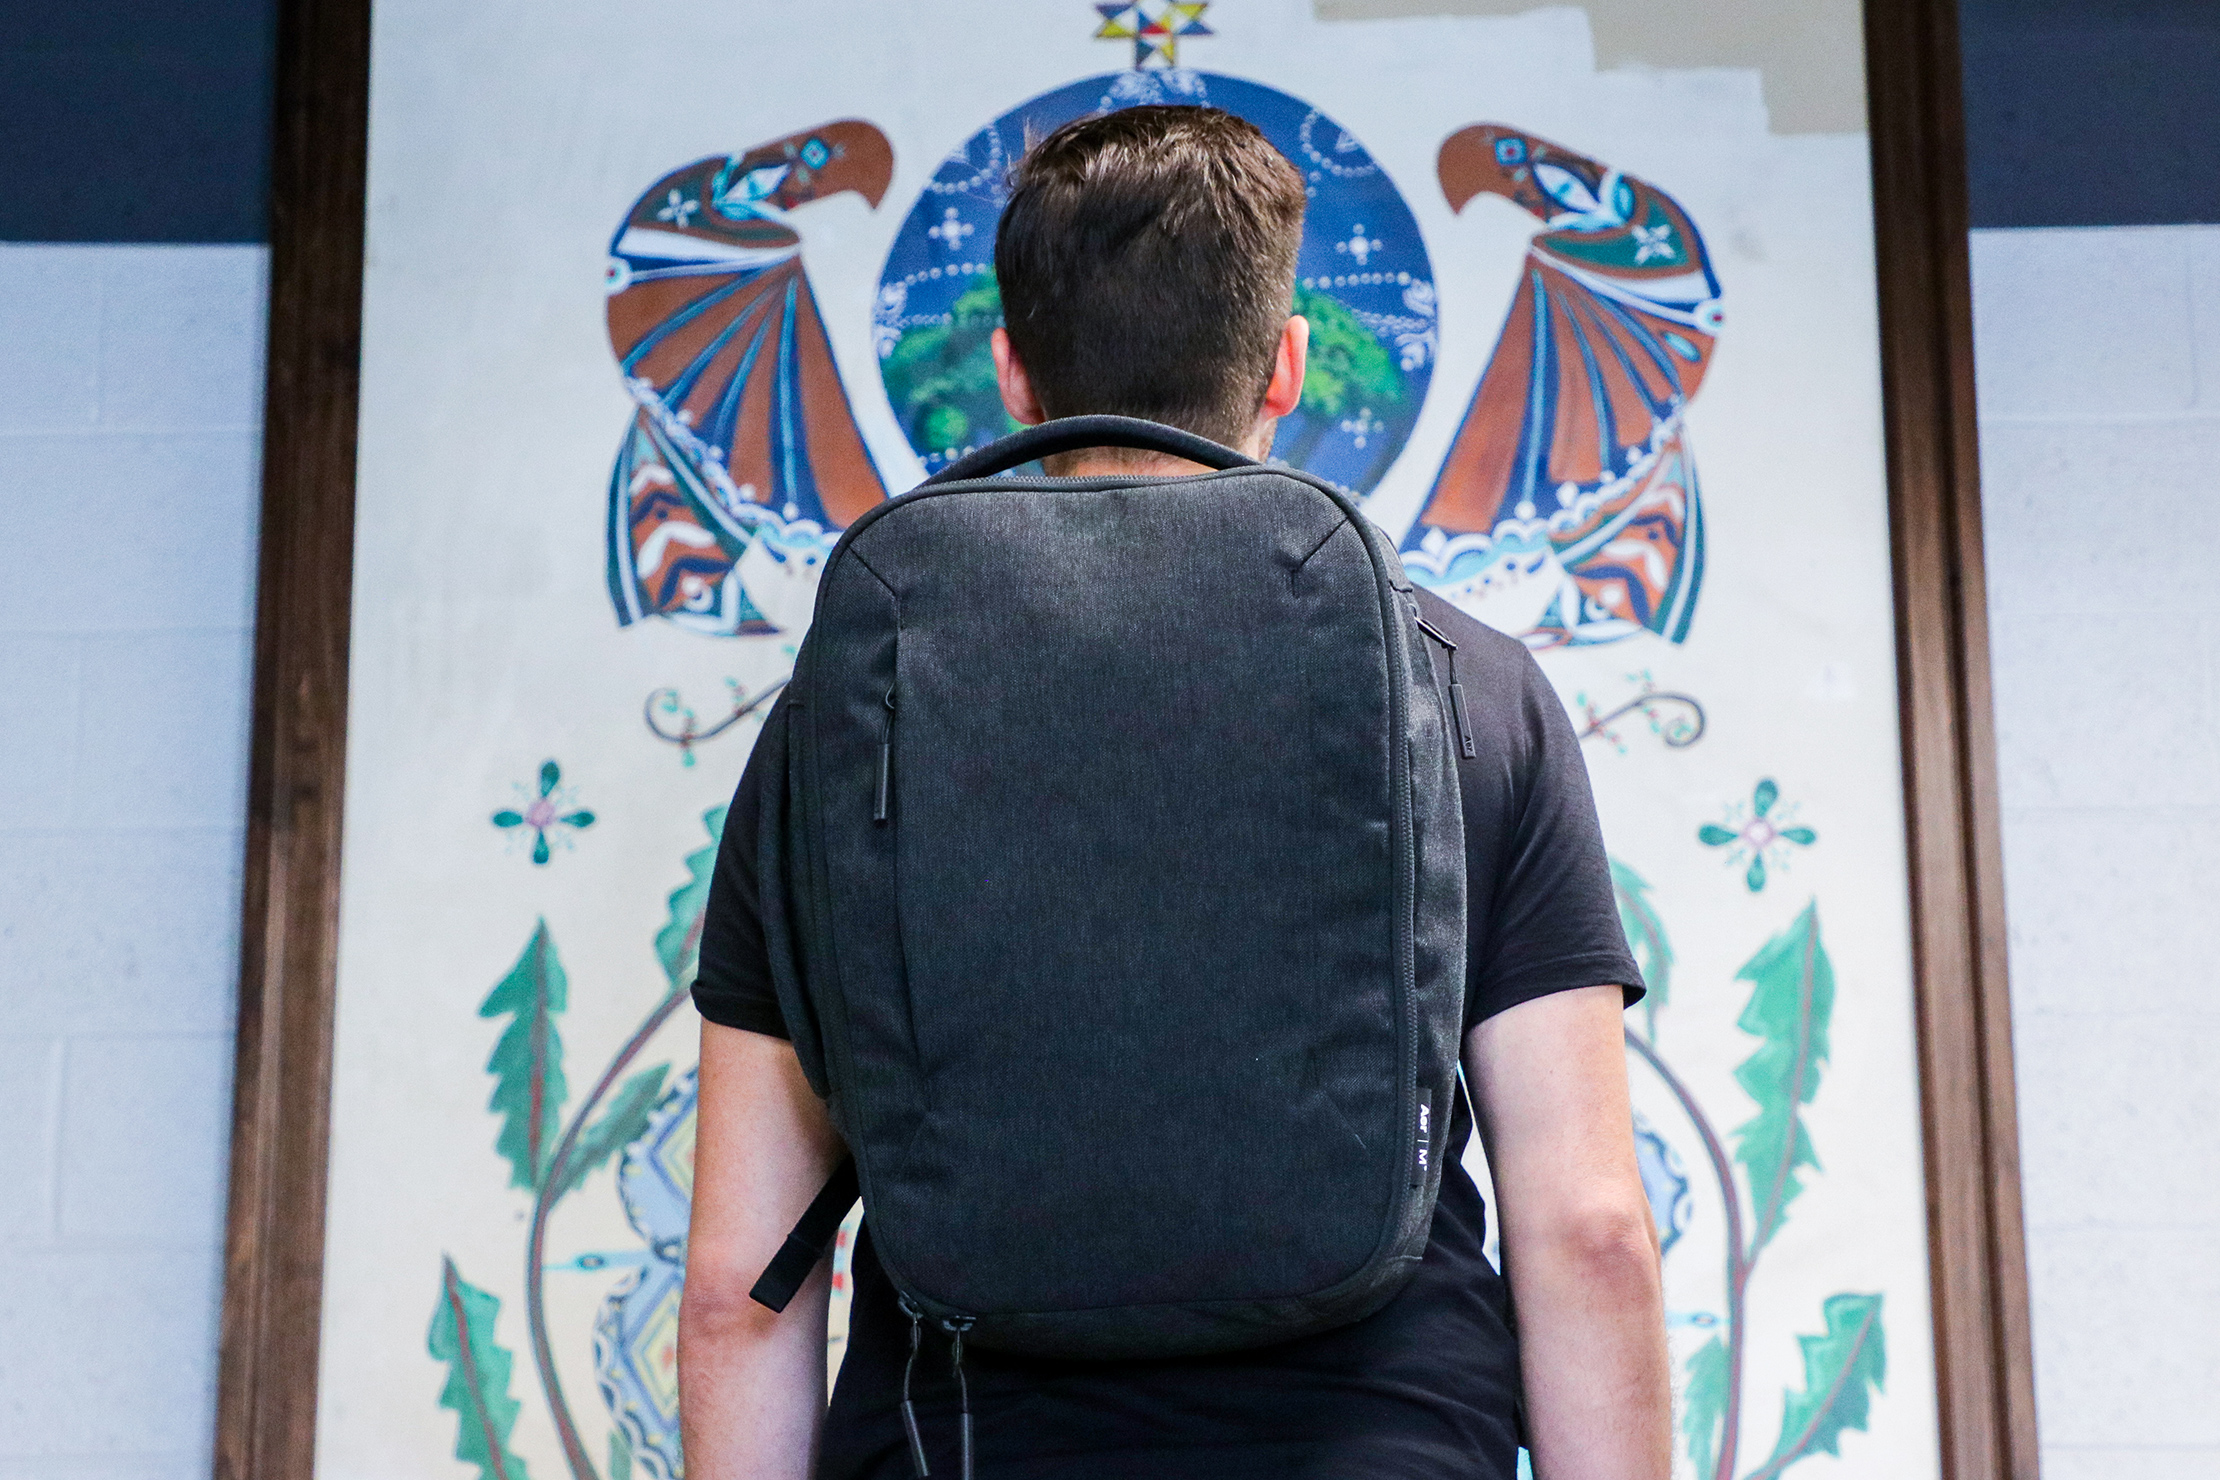 Aer x Ministry of Supply Lunar Pack Usage 2